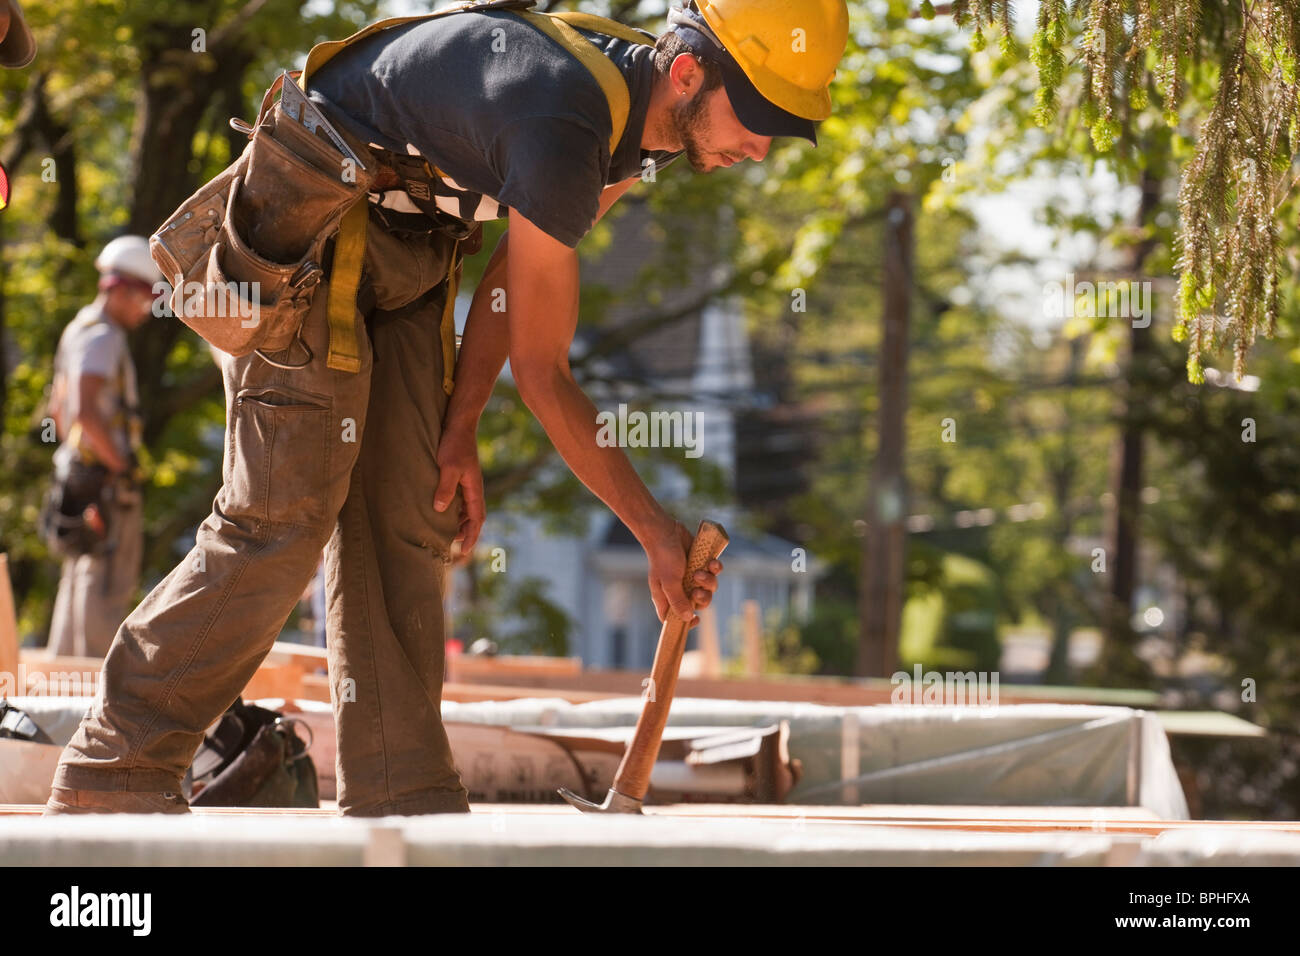 Carpenter using a claw hammer at a construction site - Stock Image